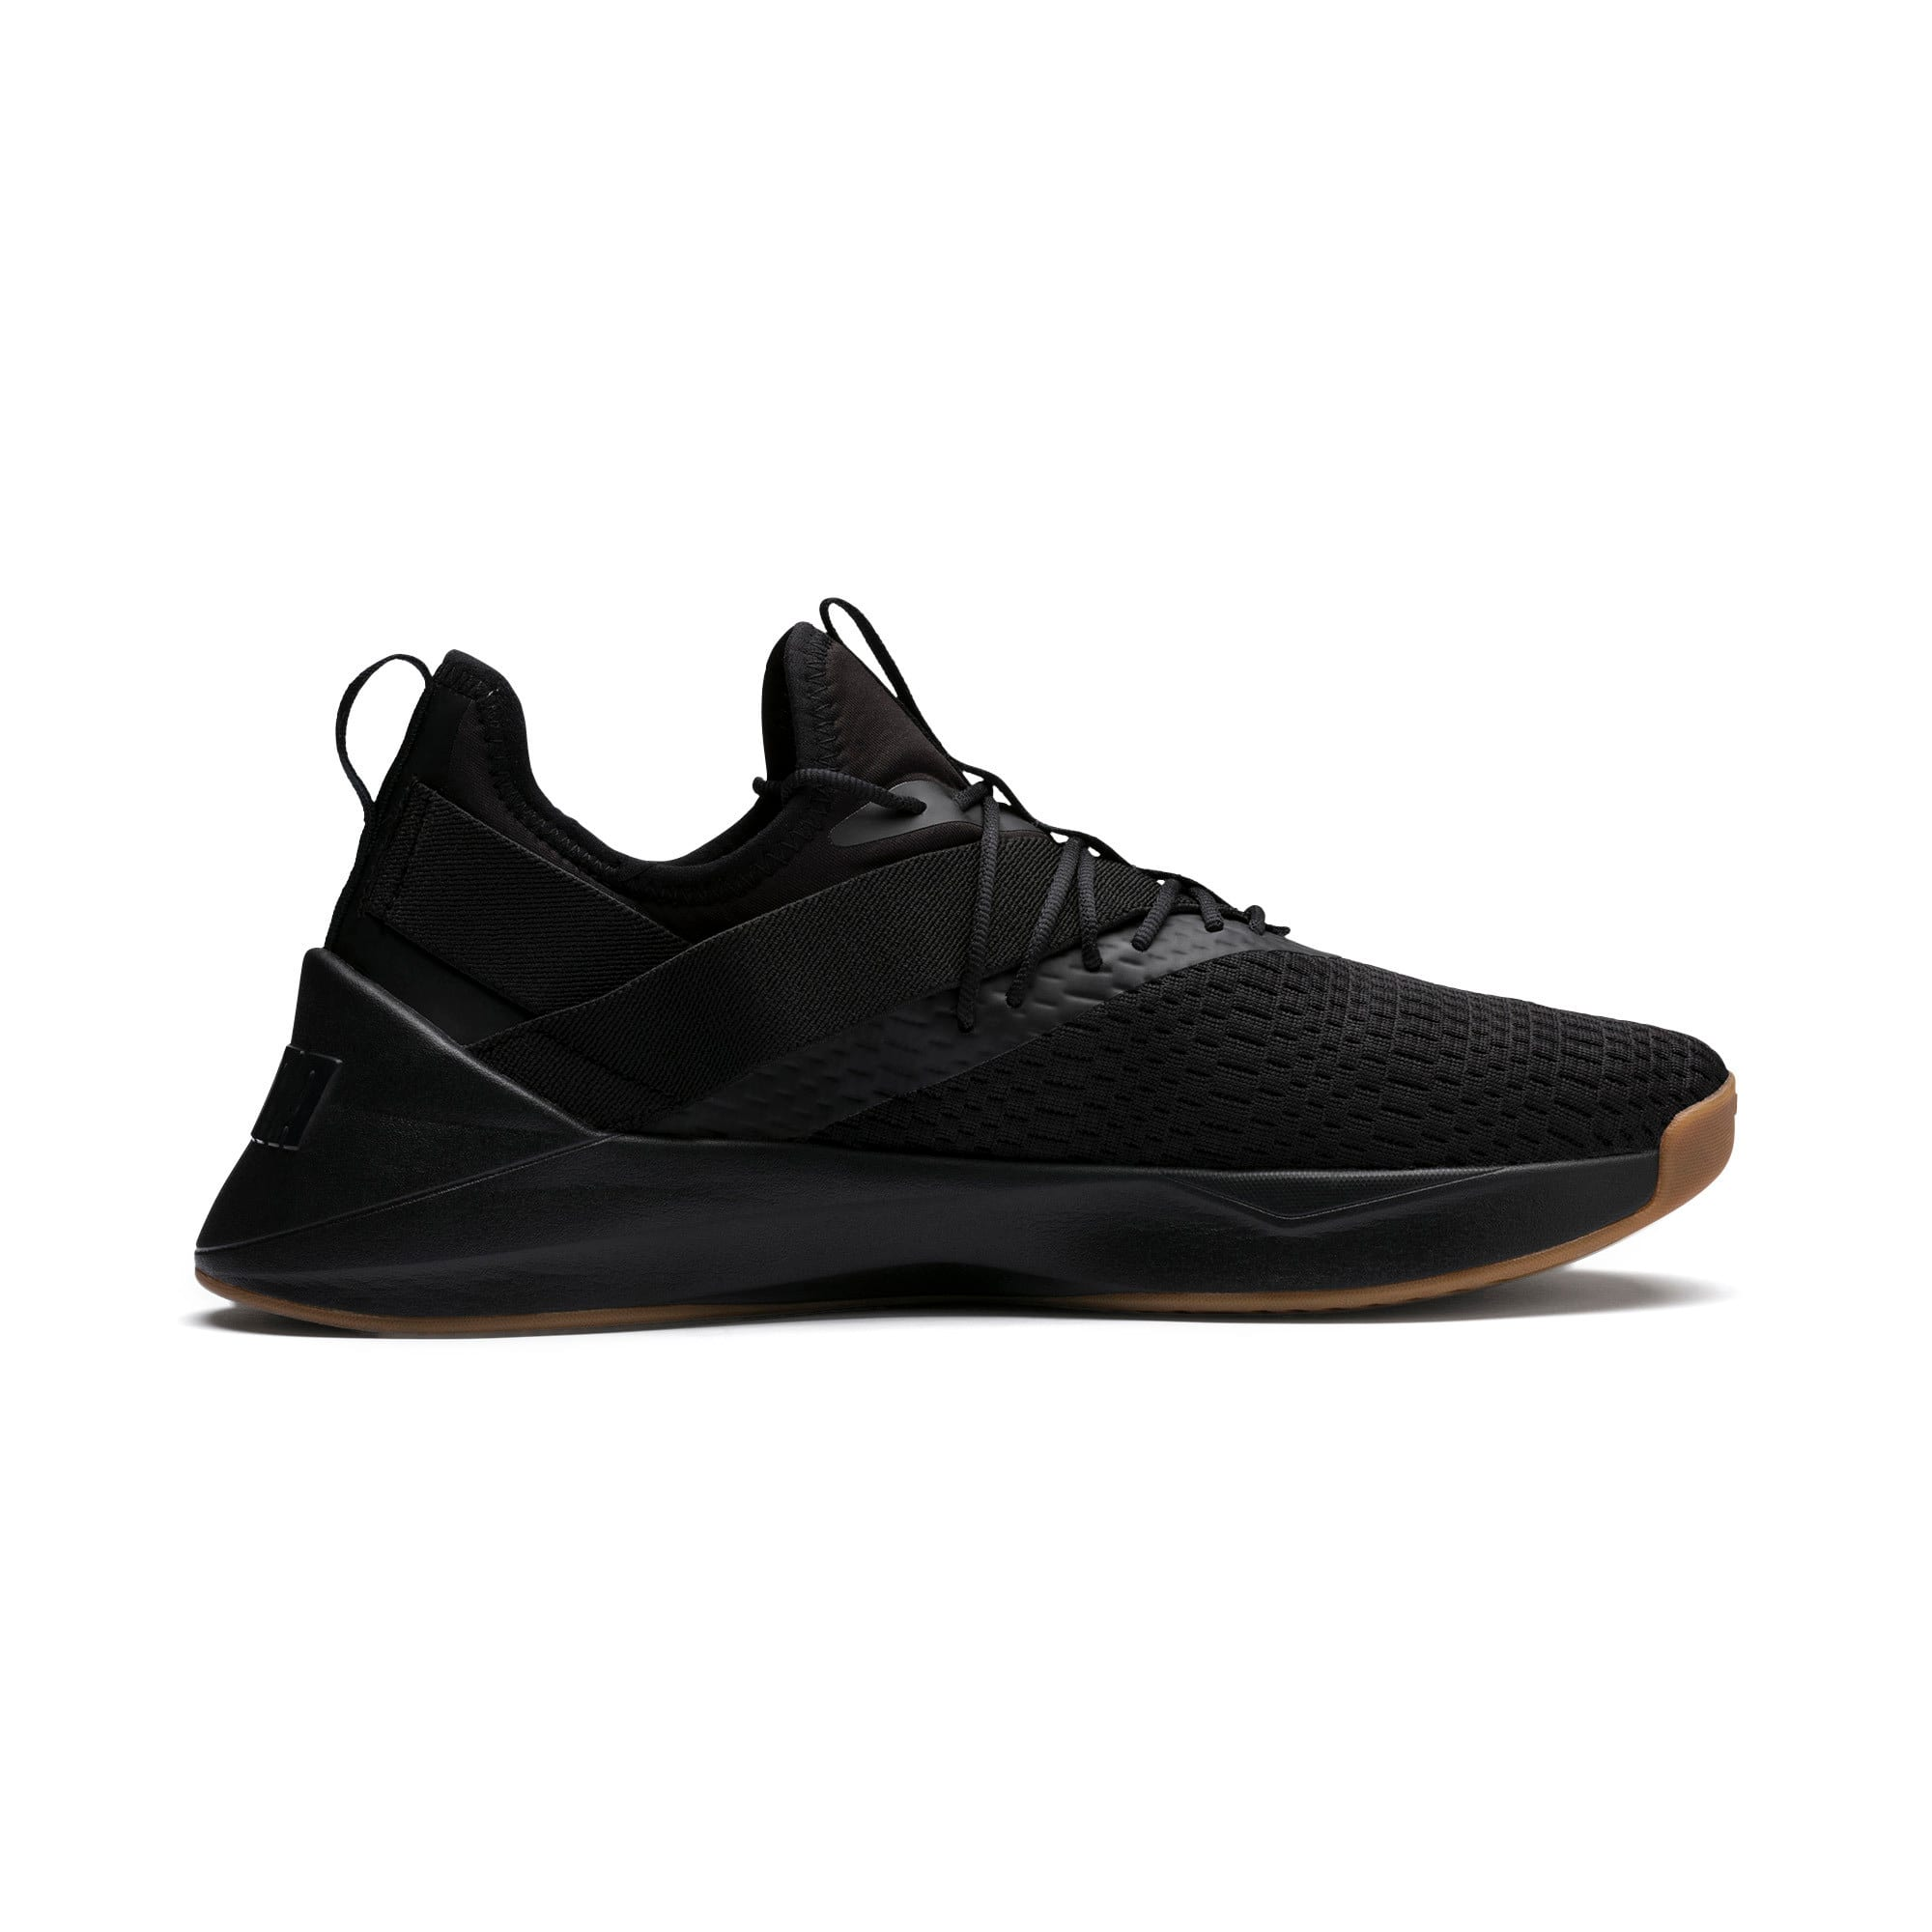 Thumbnail 5 of Jaab XT Summer Men's Training Shoes, Puma Black-Asphalt, medium